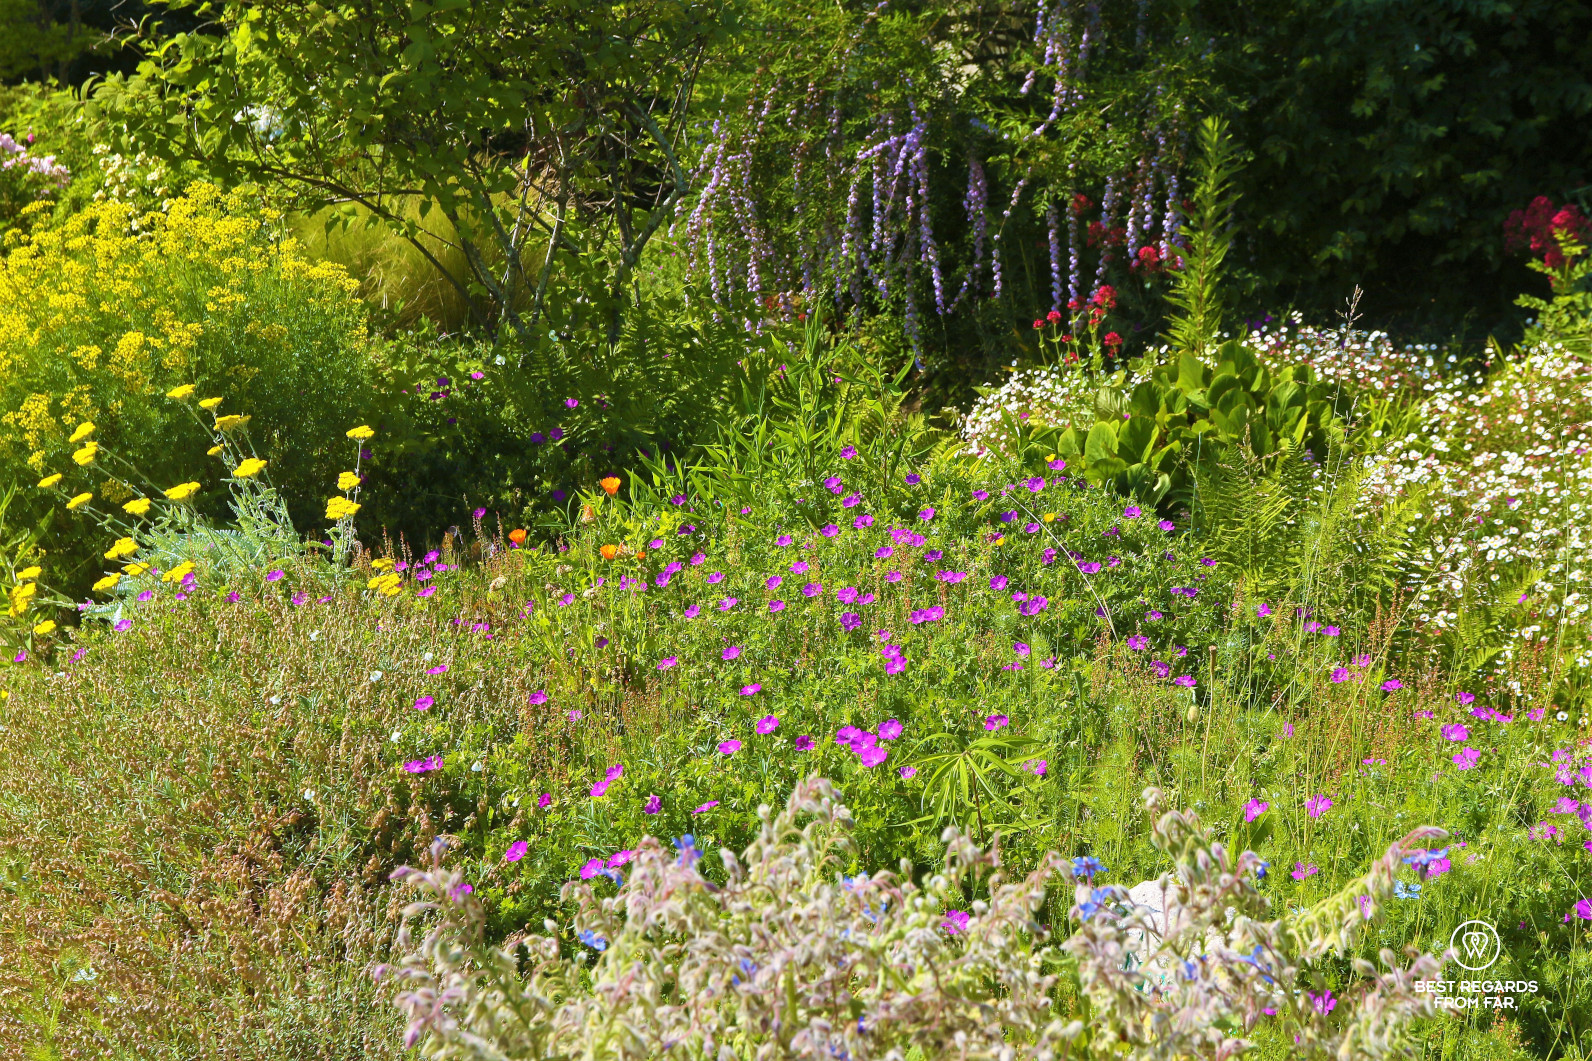 Colourful flowers at the King's Kitchen Garden in Versailles.